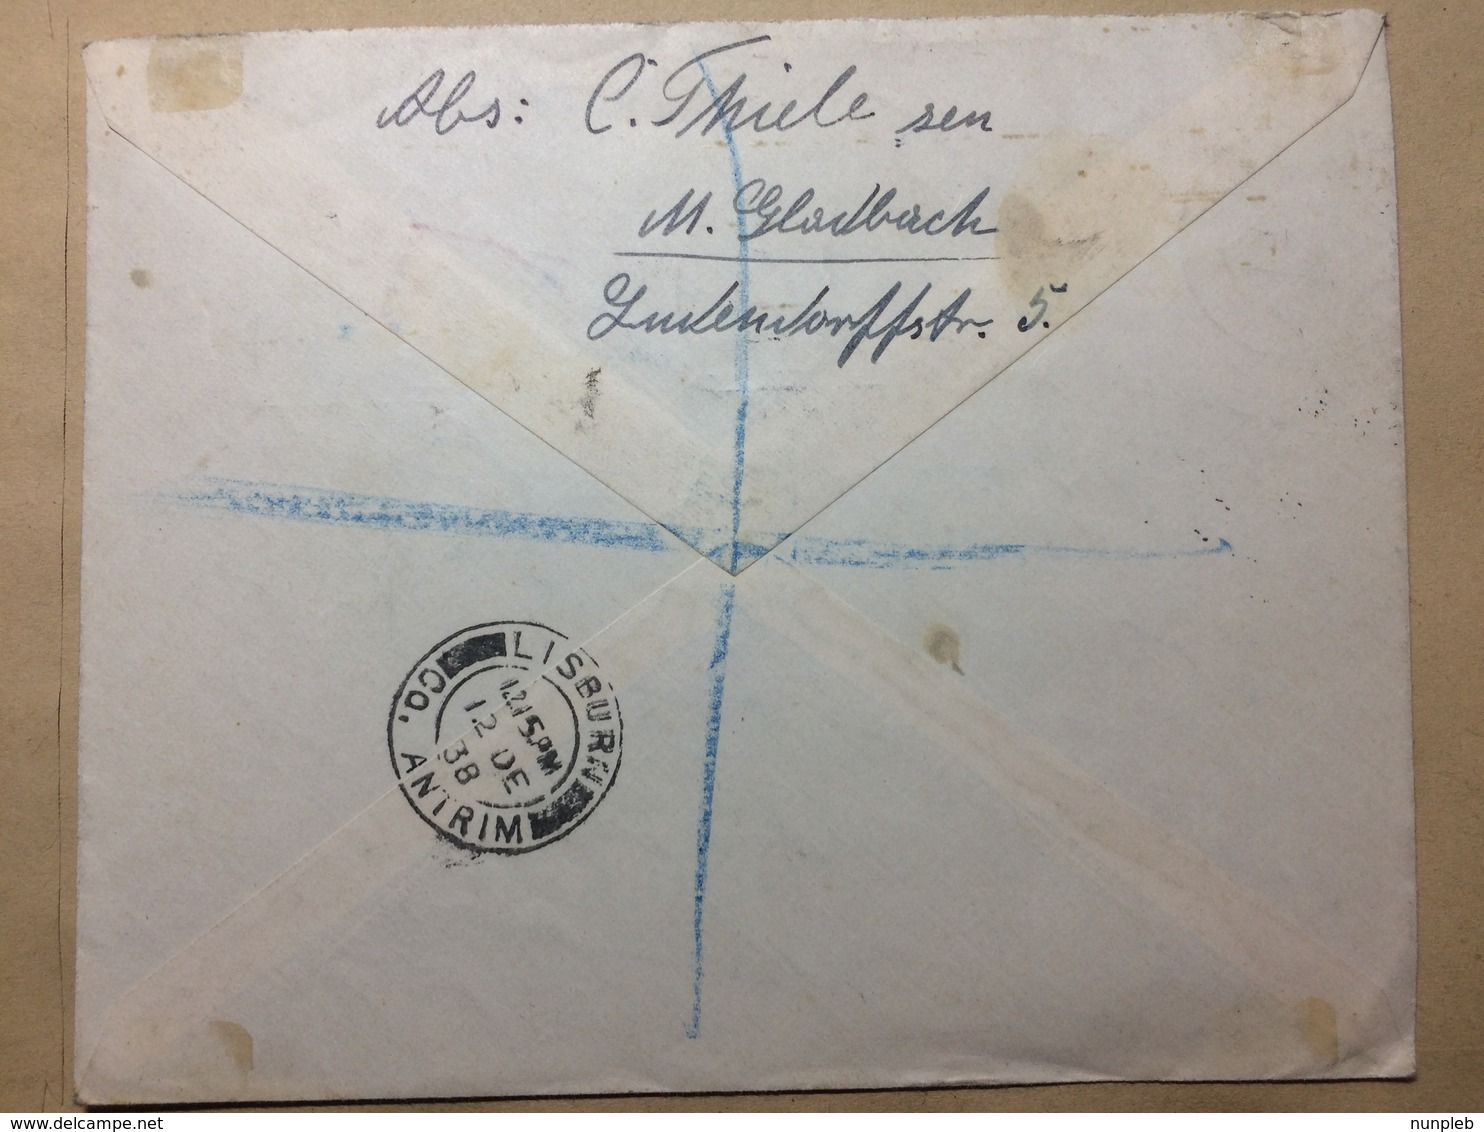 GERMANY - 1938 Cover - Winter Relief Fund Air Mail Registered Munchen Gladbach To Lisburn N. Ireland - Allemagne